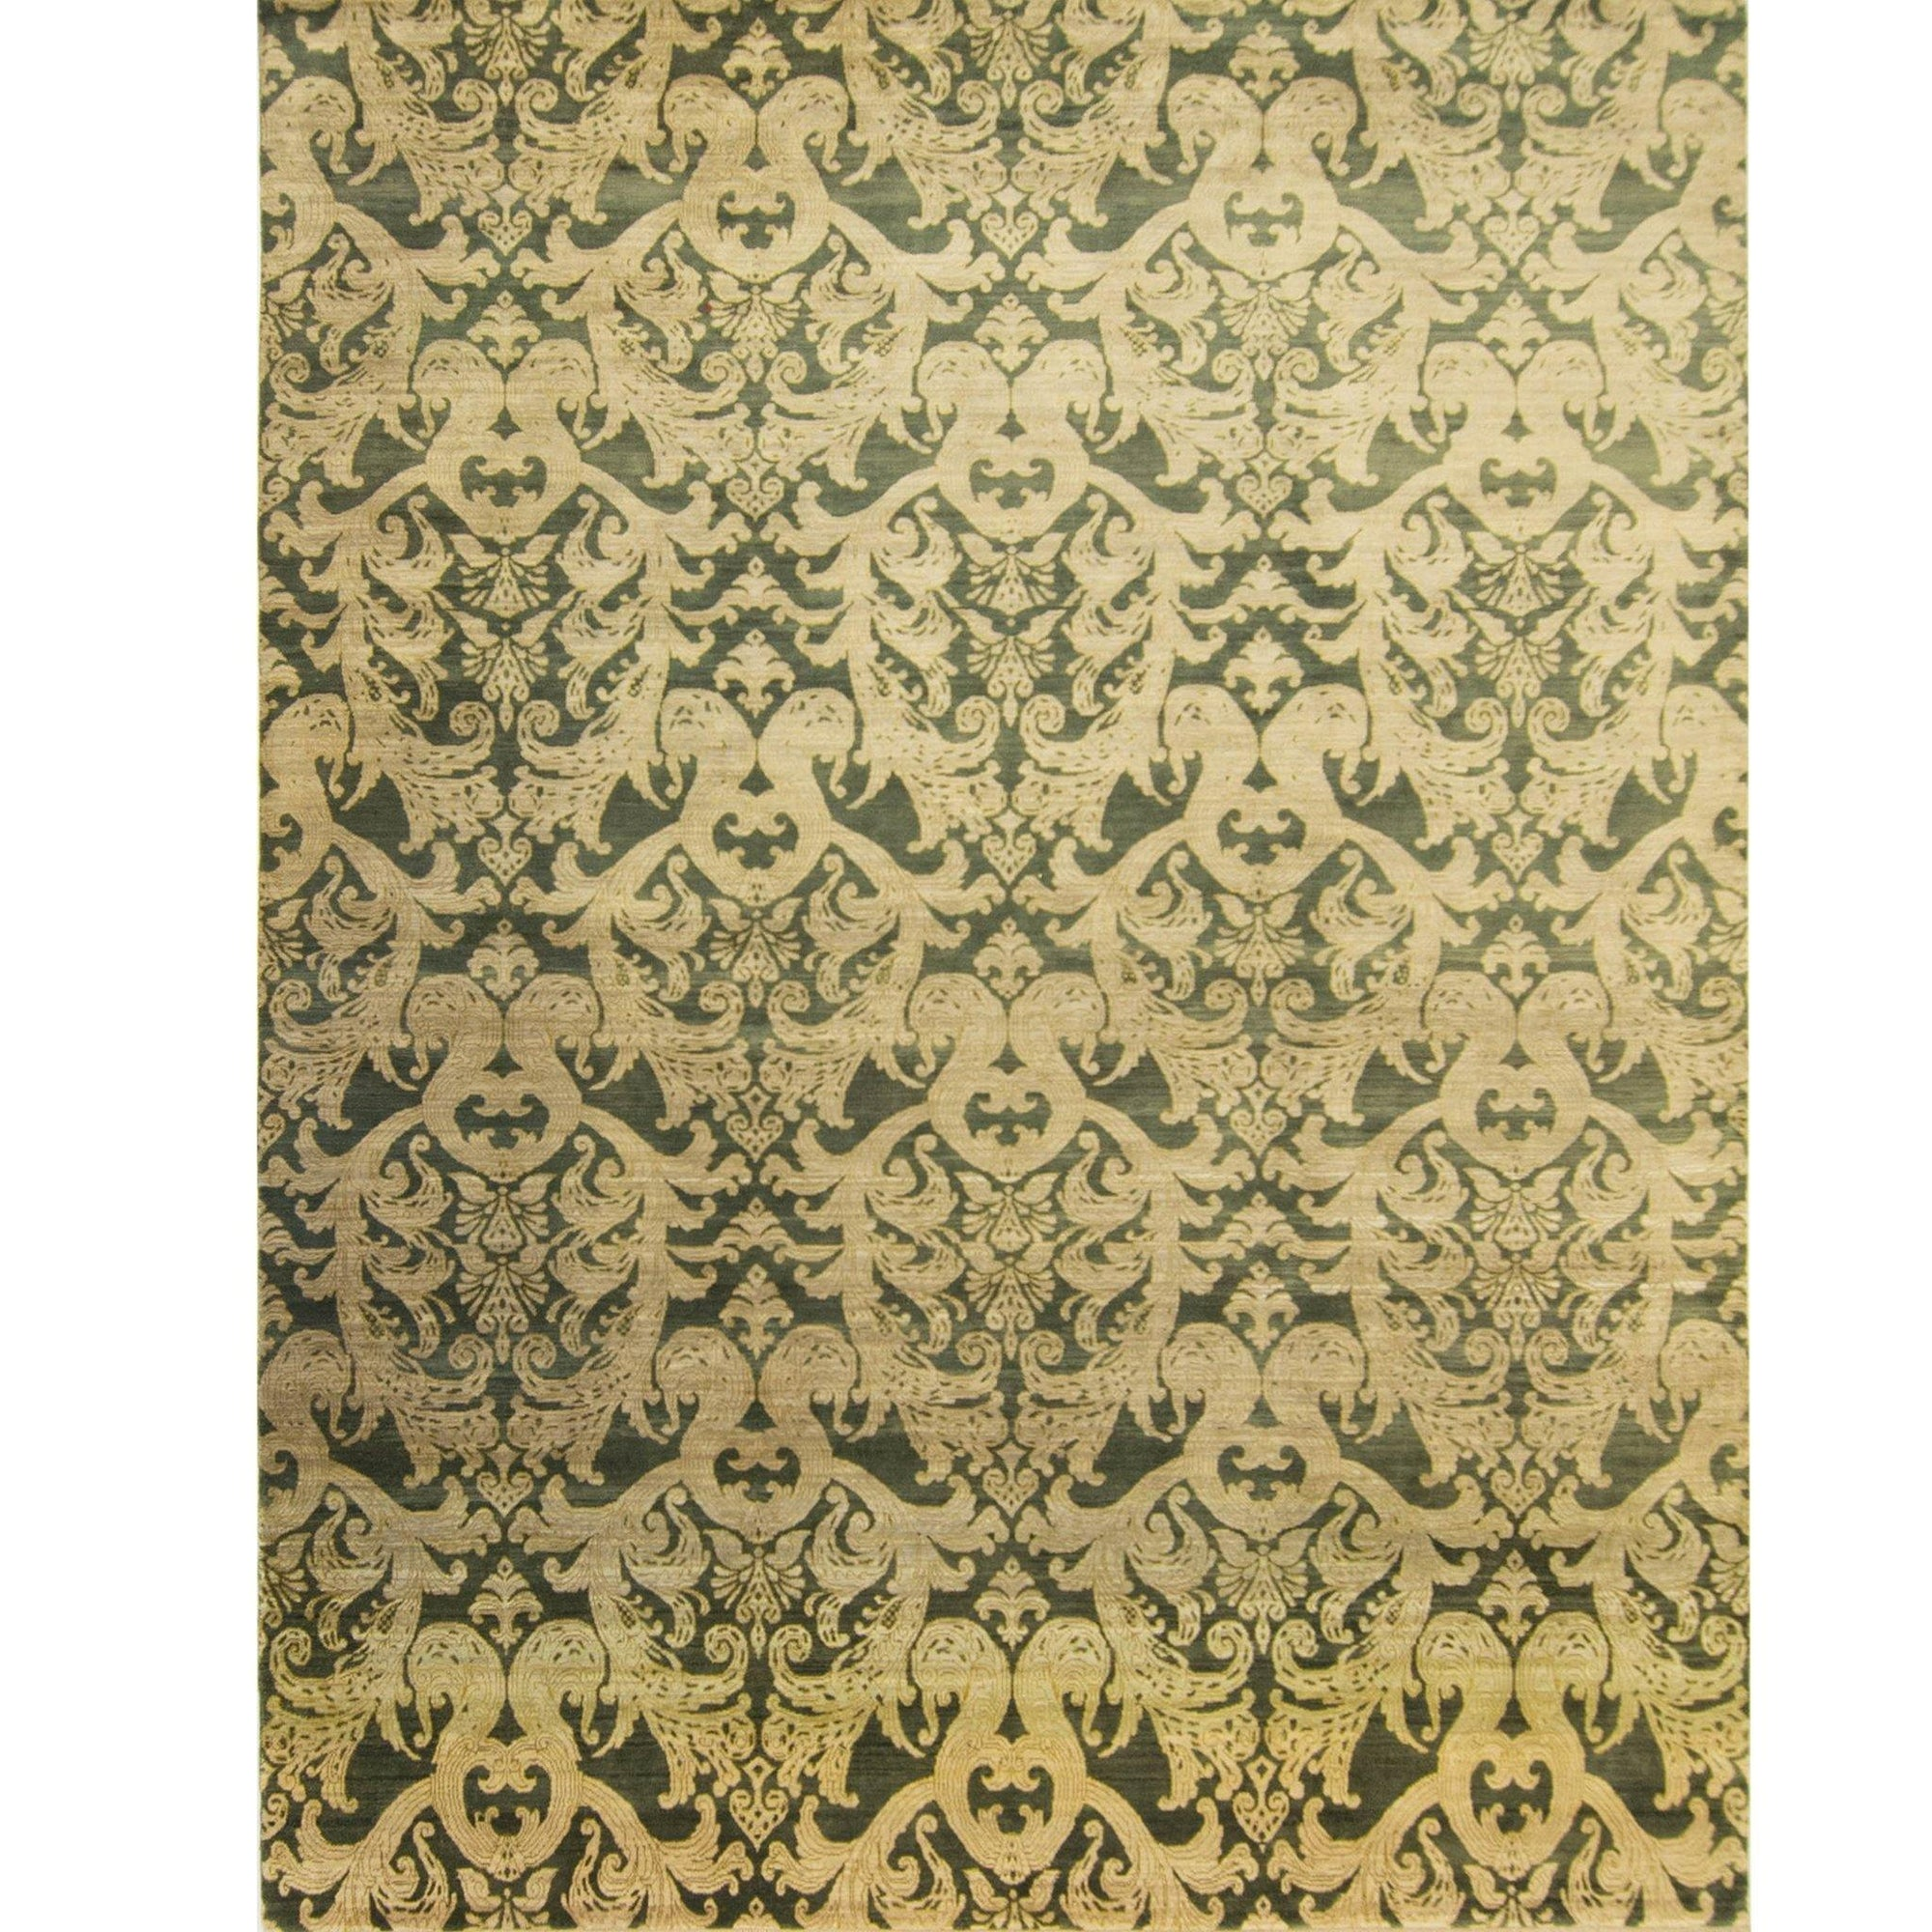 Fine Modern Hand-knotted Ushak Rug 277cm x 362cm Persian-Rug | House-of-Haghi | NewMarket | Auckland | NZ | Handmade Persian Rugs | Hand Knotted Persian Rugs